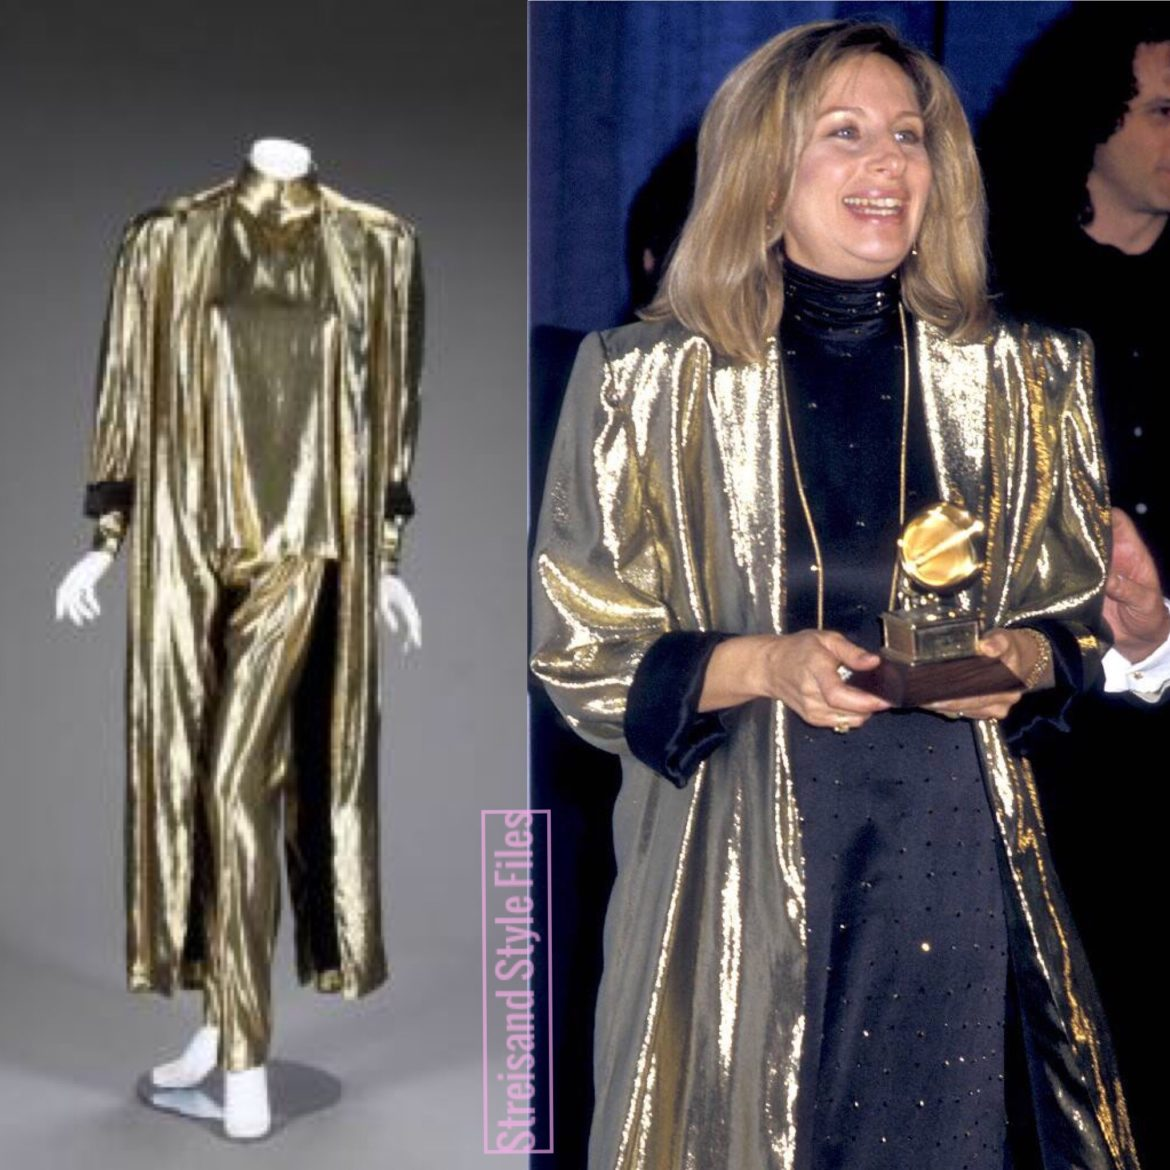 1987 Grammy Awards In Christian Dior